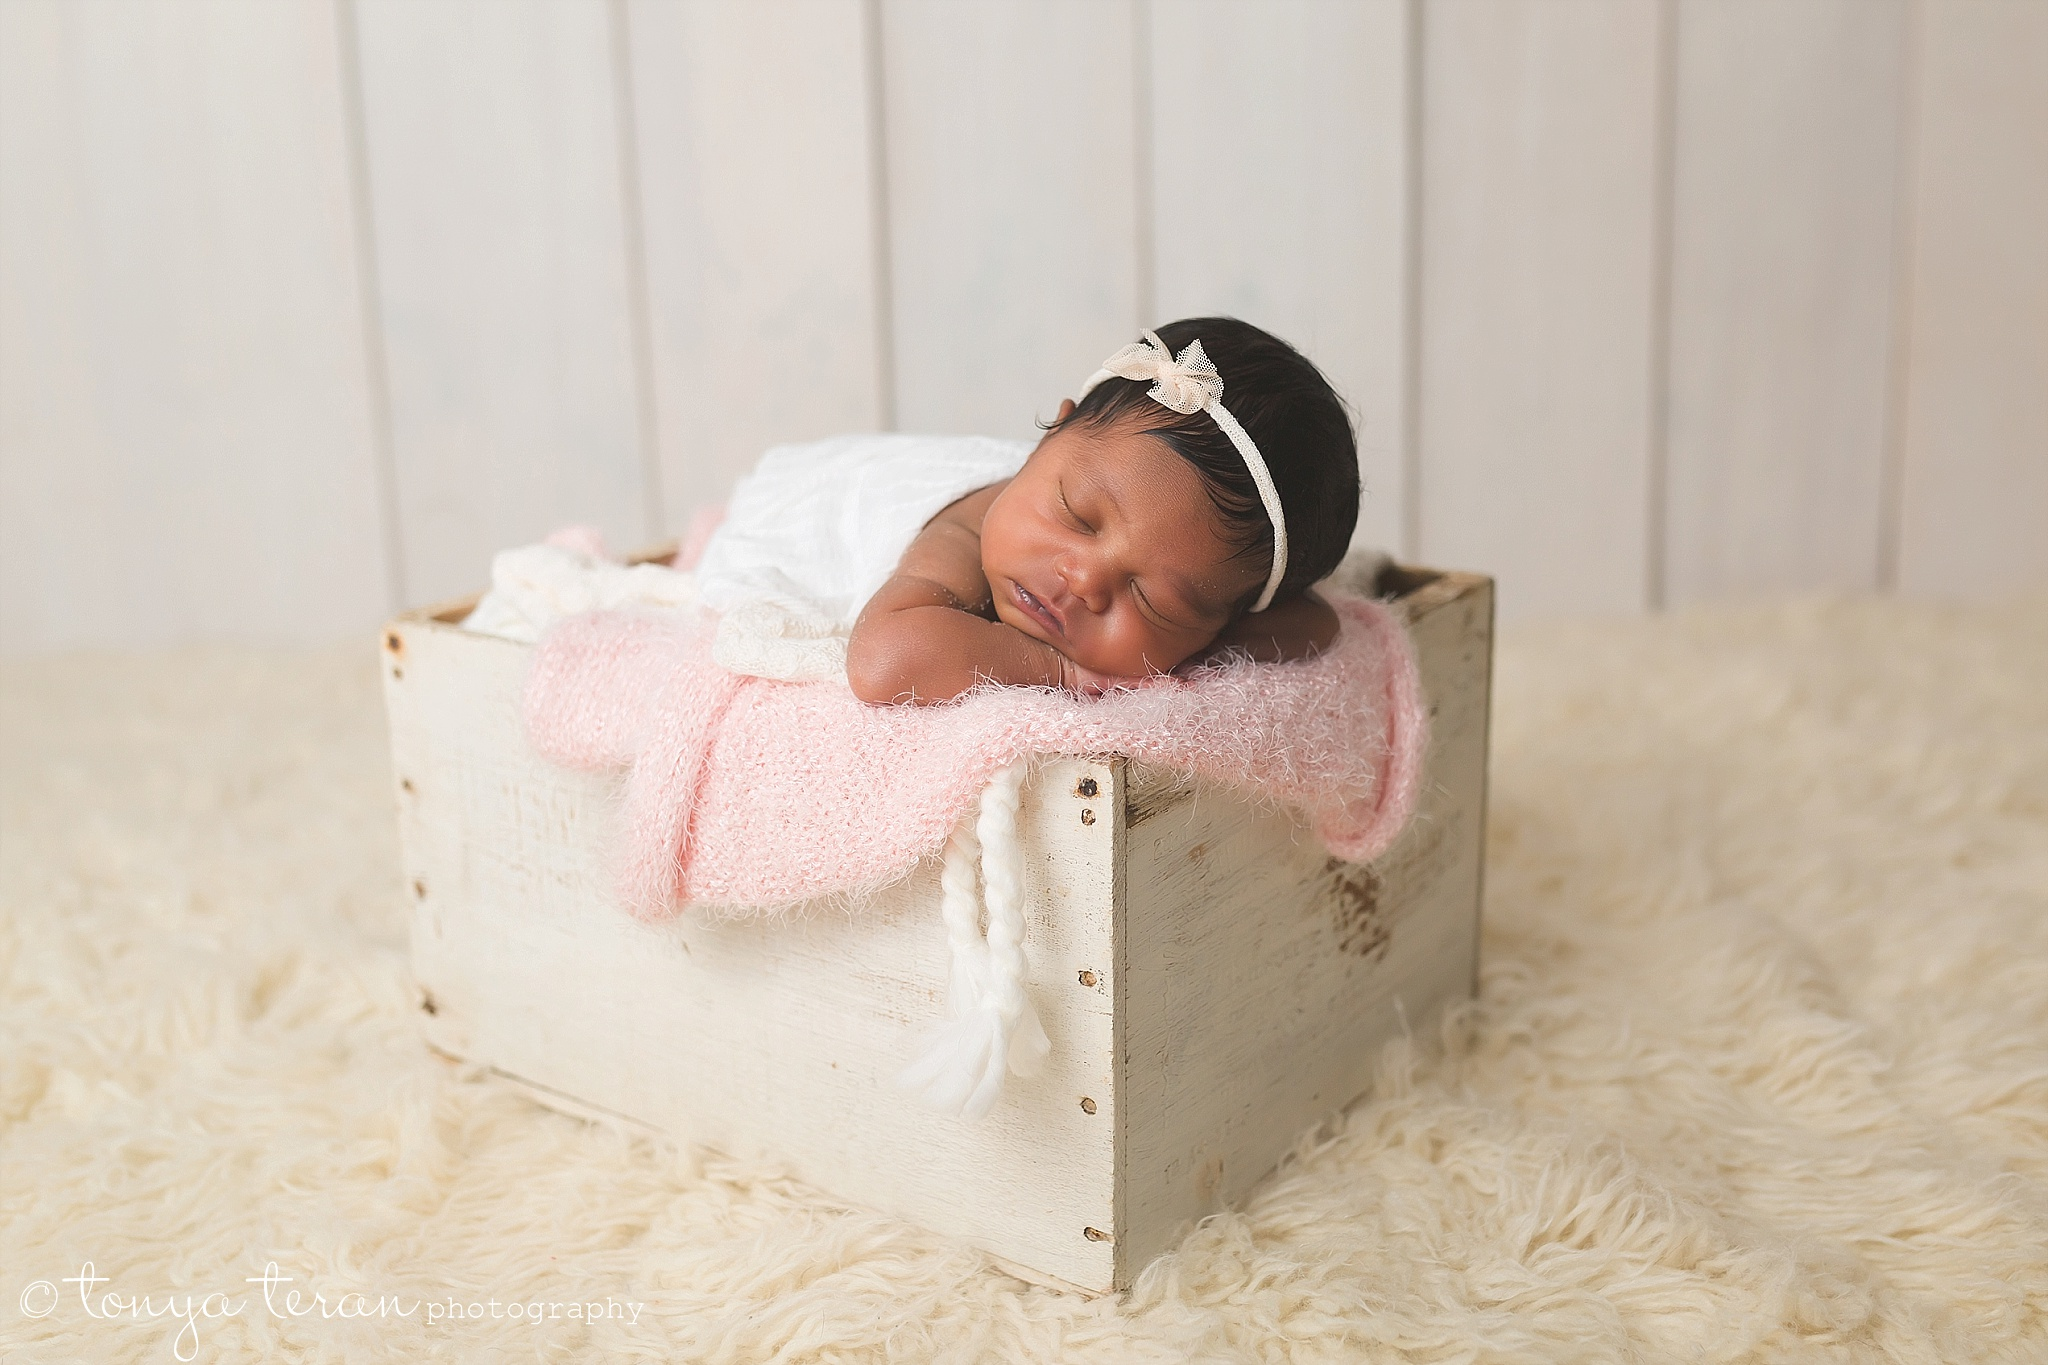 Newborn Photo Session | Tonya Teran Photography, Kensington, MD Newborn, Baby, and Family Photographer